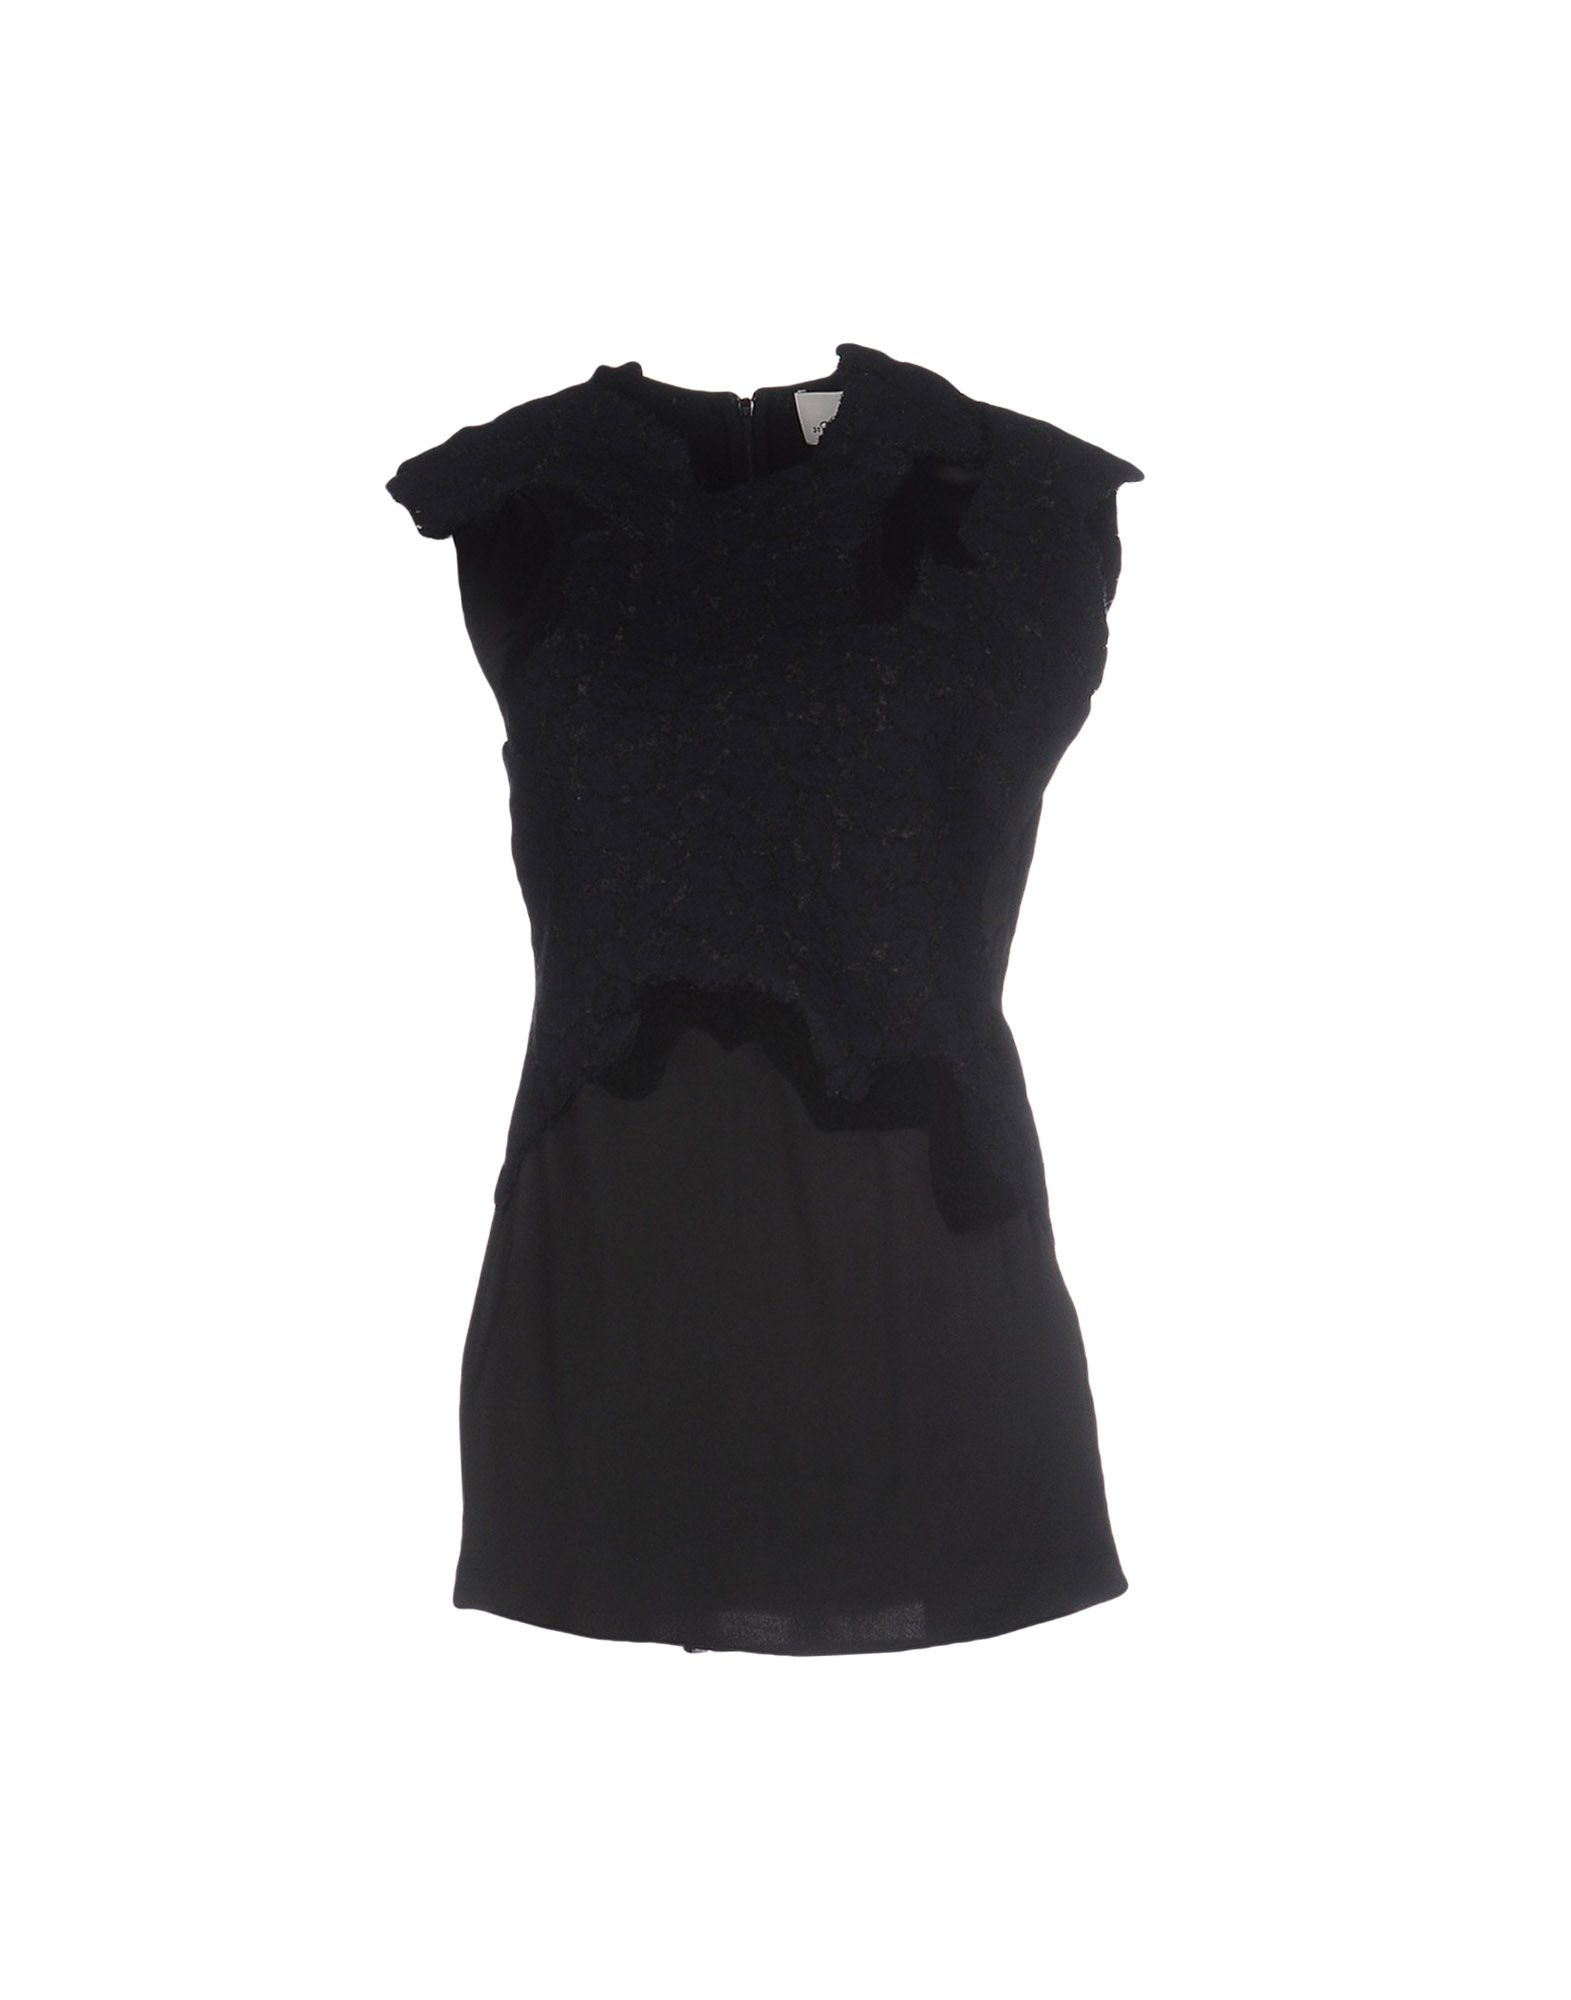 Top 3.1 Phillip Lim Donna - Acquista online su 2nz3kLBCIx